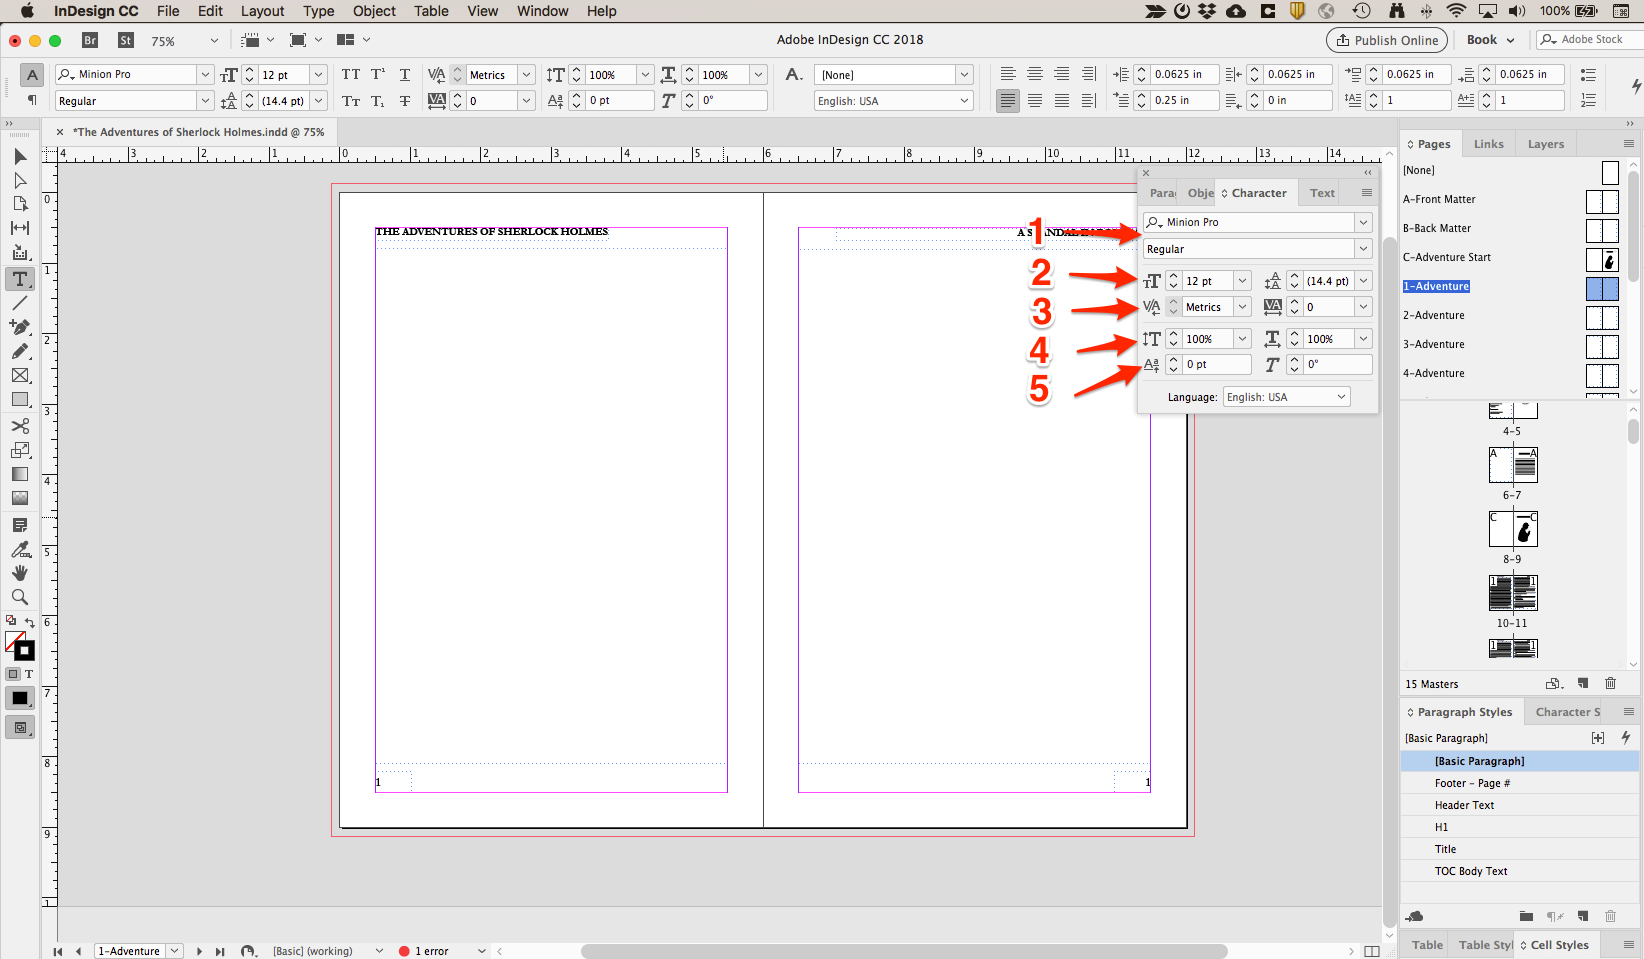 InDesign Character Toolbox options